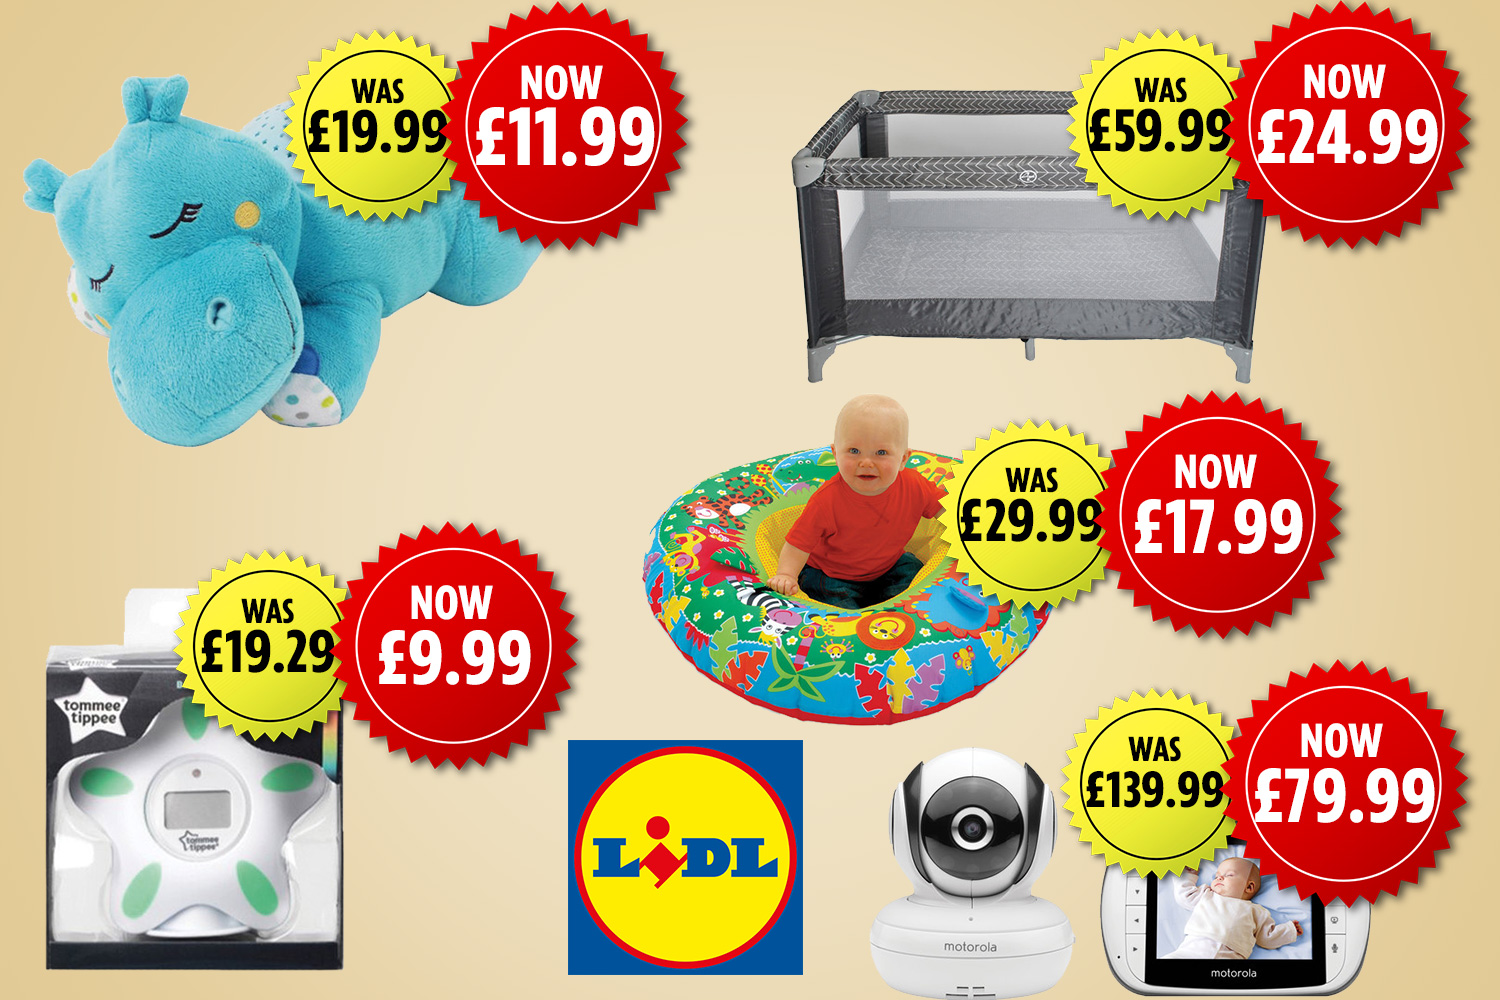 Baby Prams For Sale Uk Lidl Launches Baby Sale With Up To 60 Off Prams Cots And